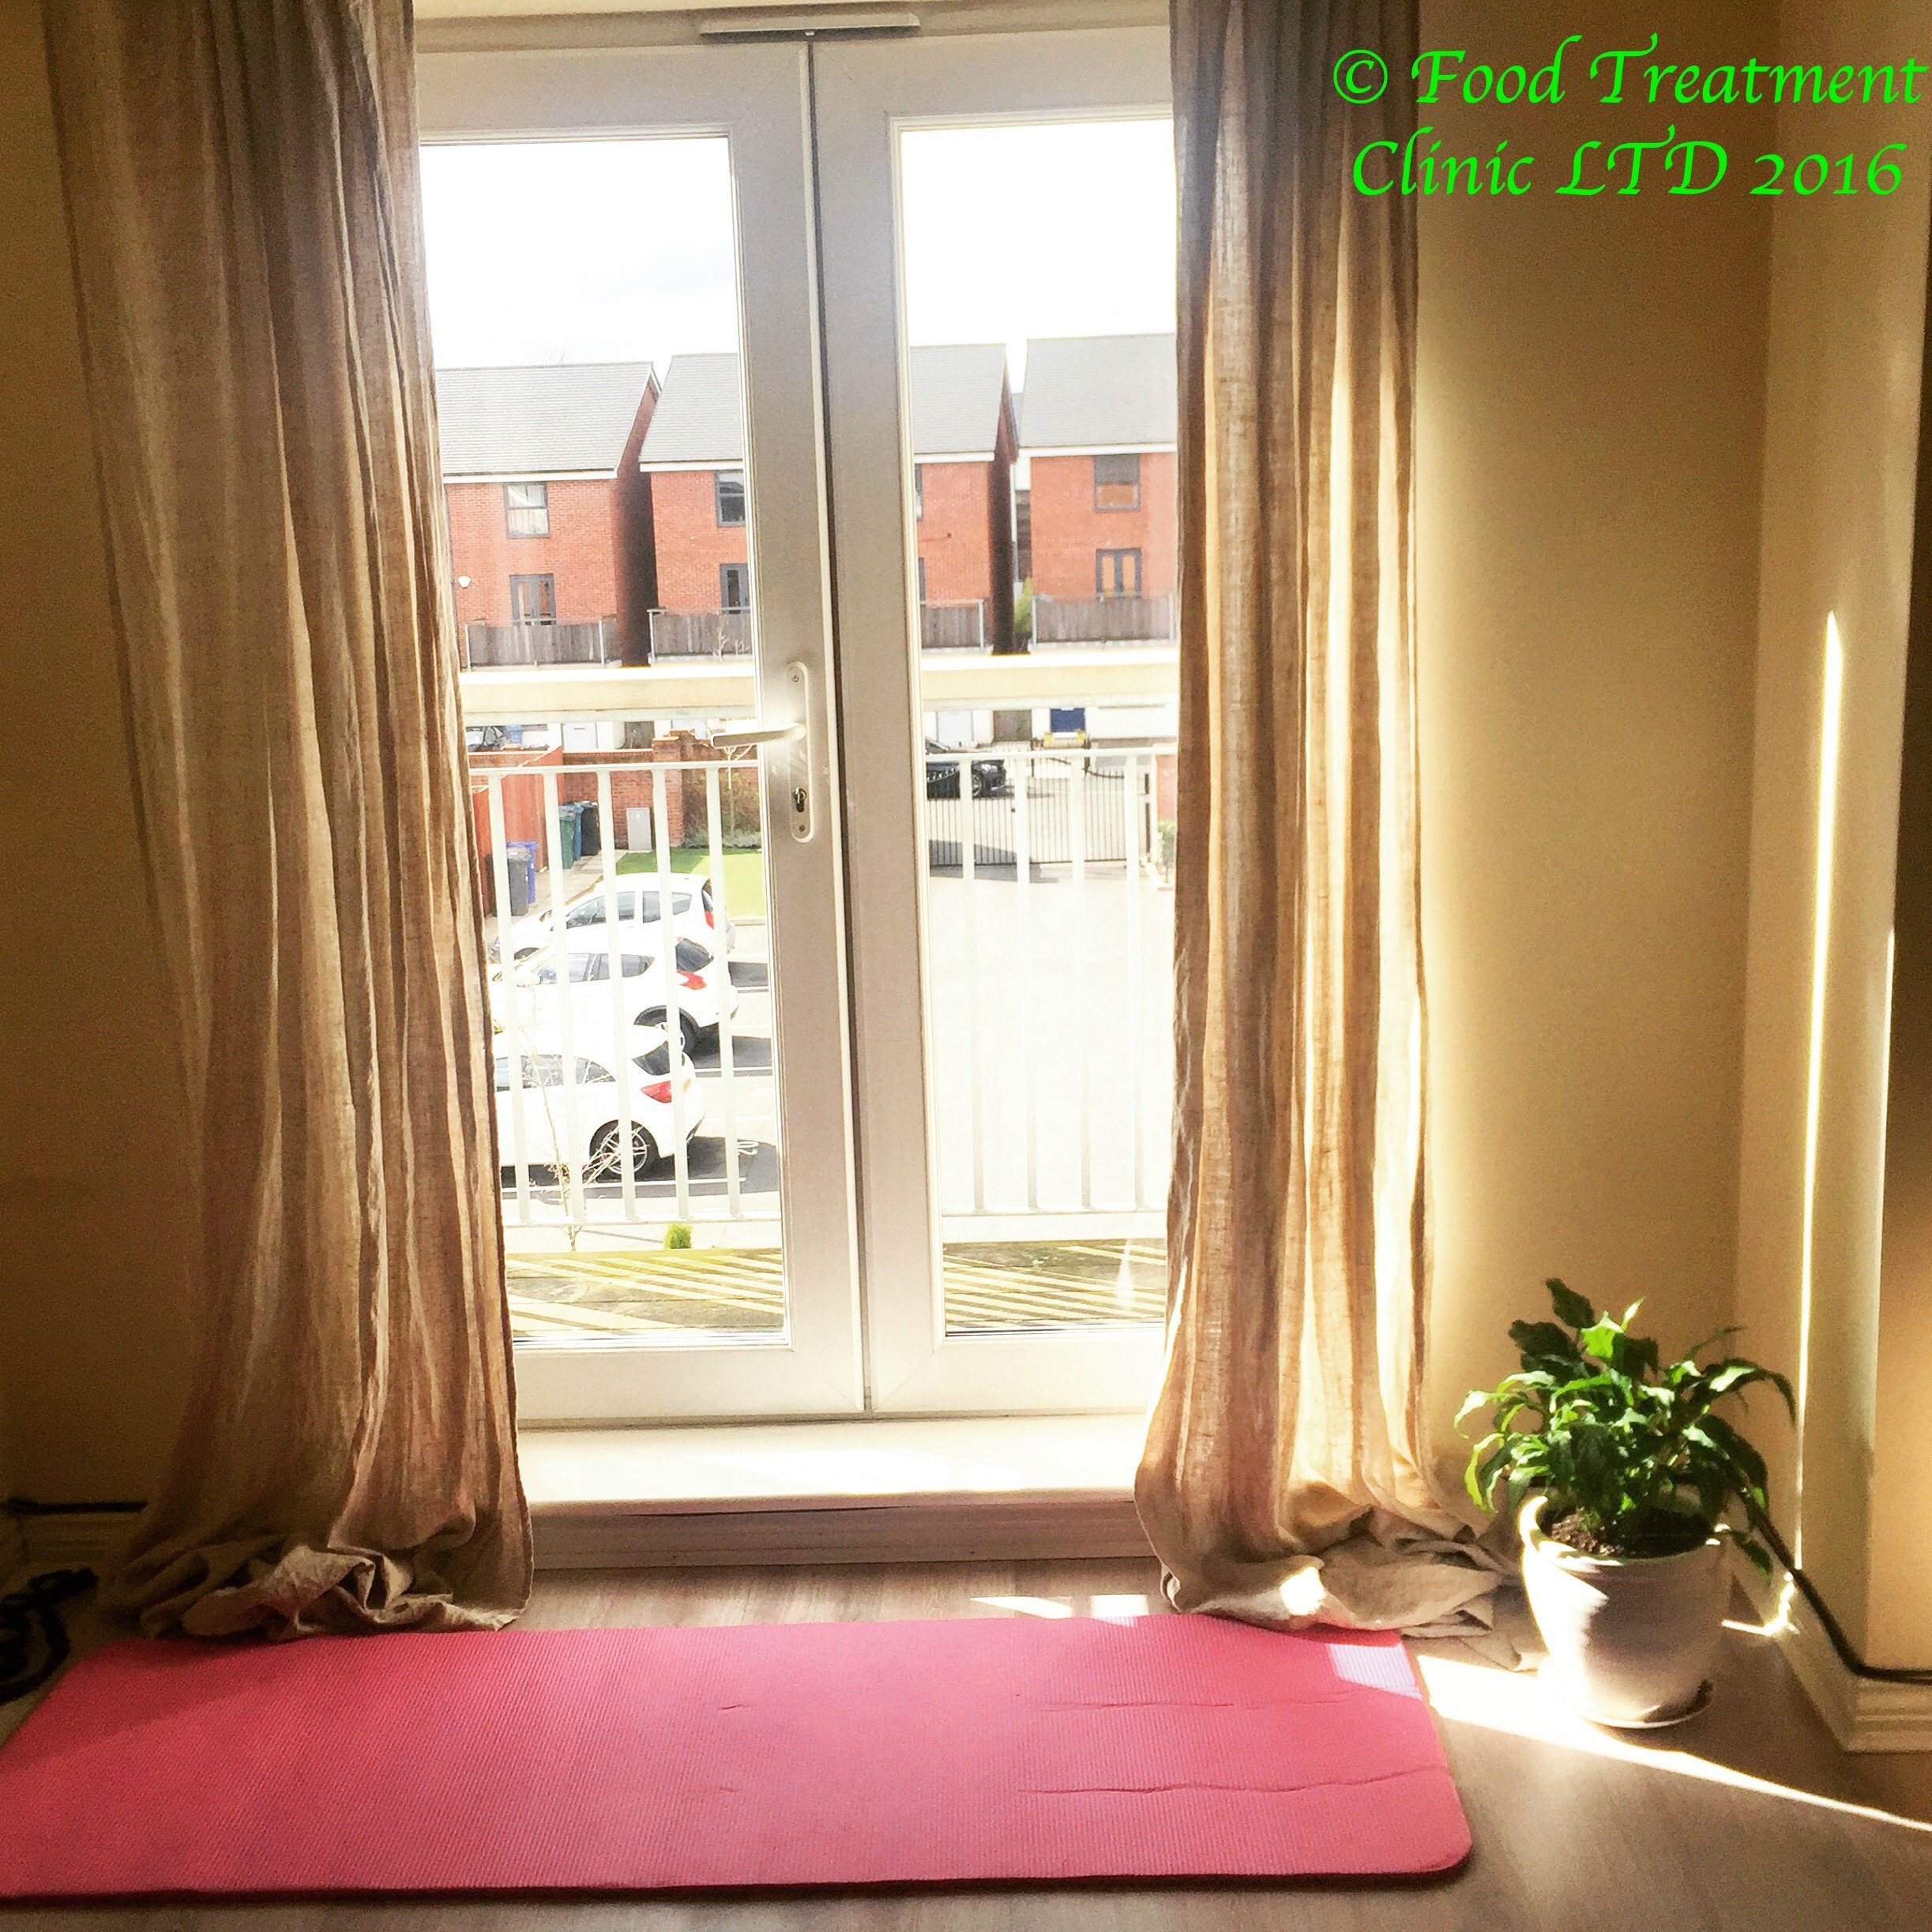 Workout mat by window